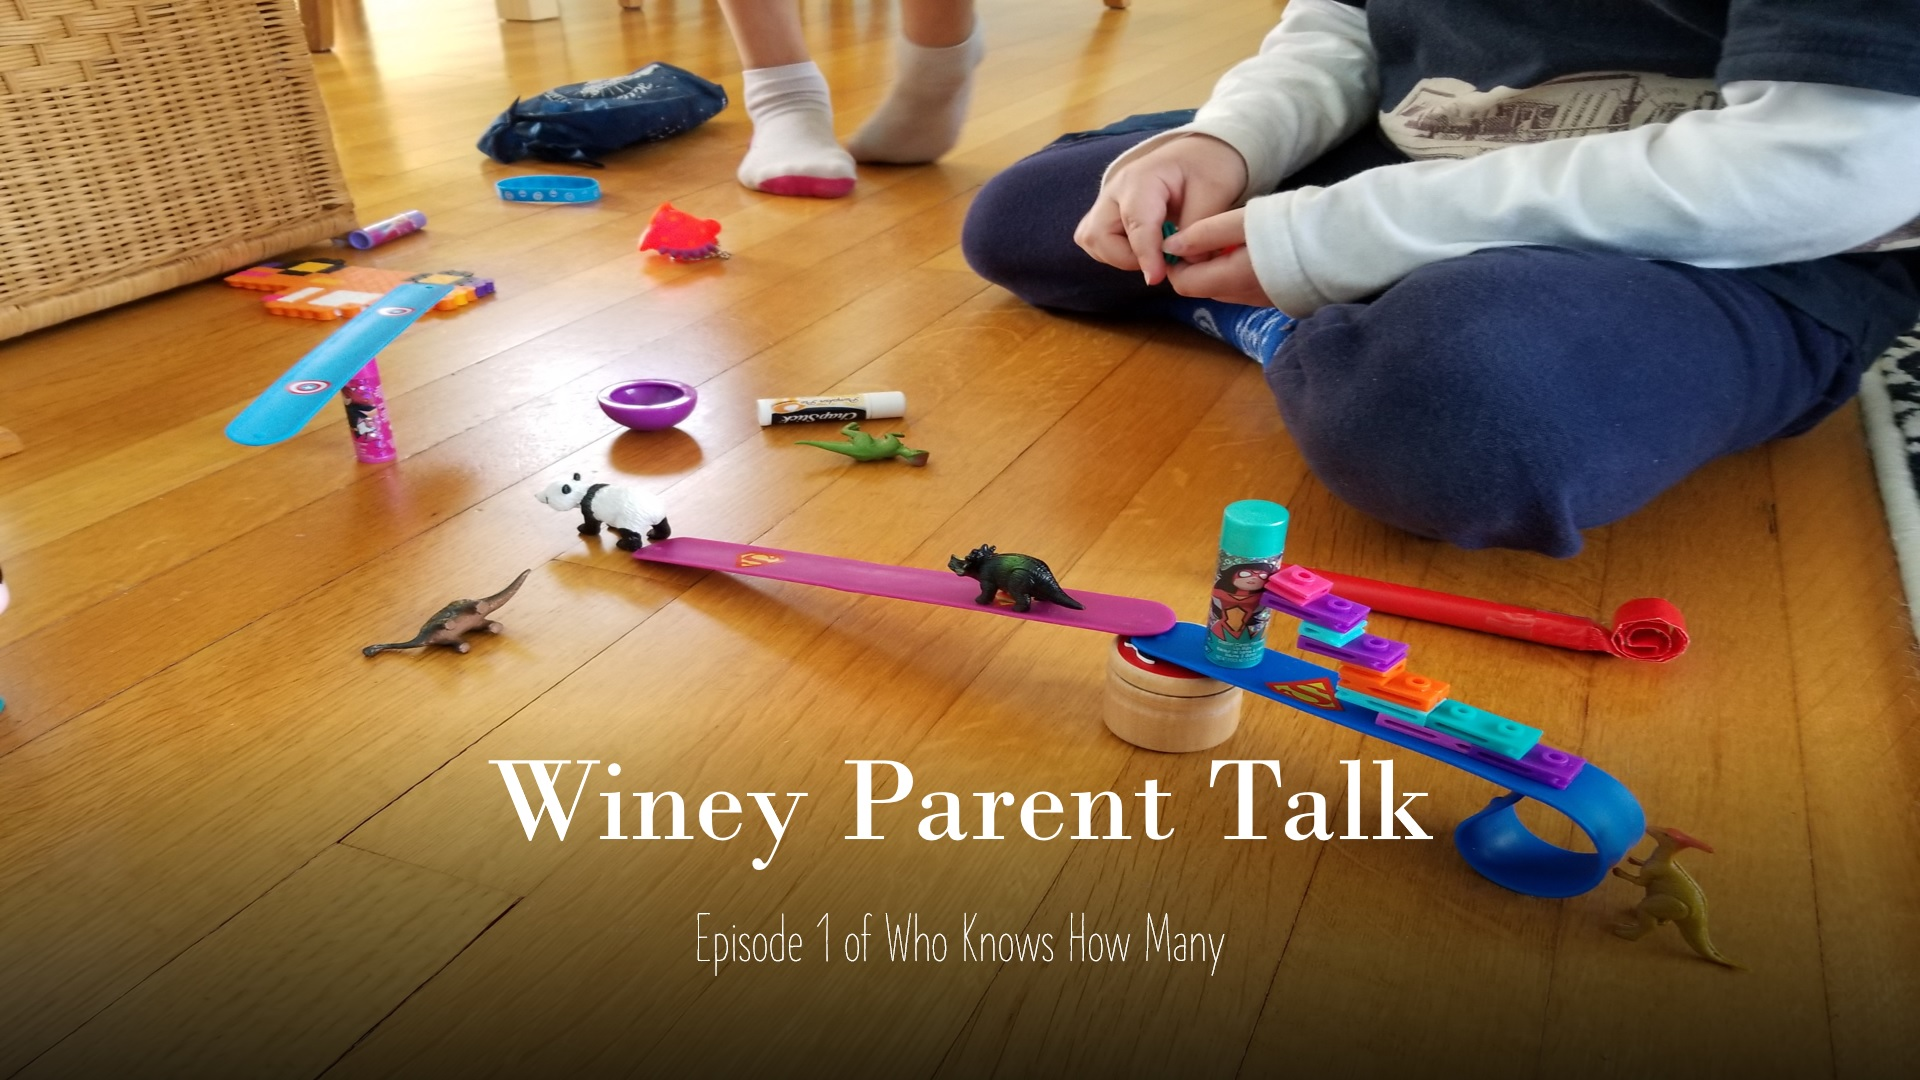 Winey Parent Talk: Parenting Fears During a Pandemic